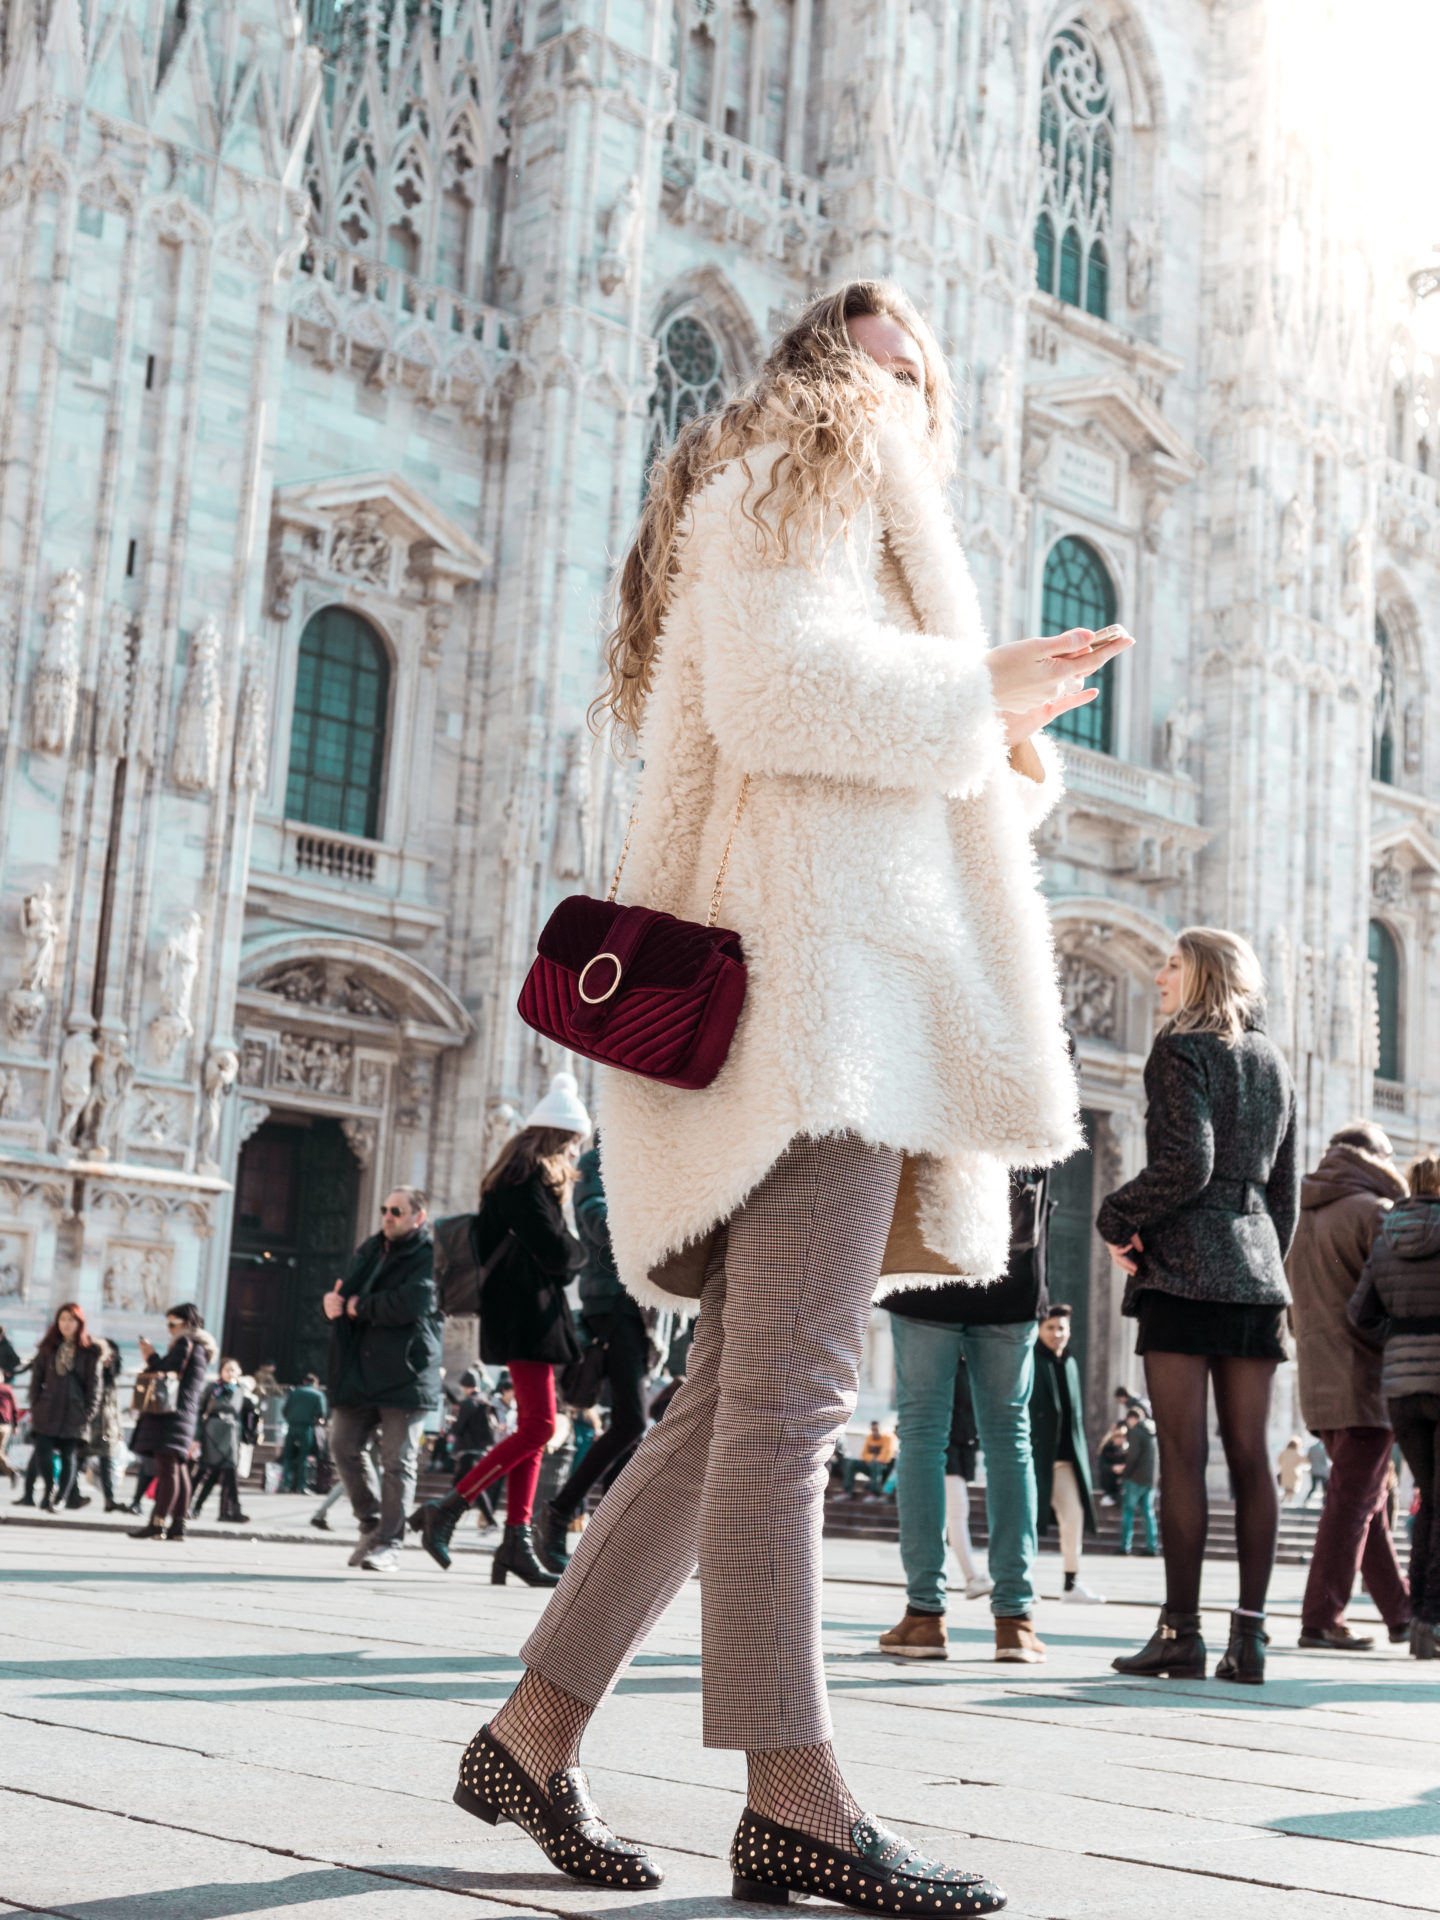 The 6 Best Instagrammable Photo Spots In Milan Popshion